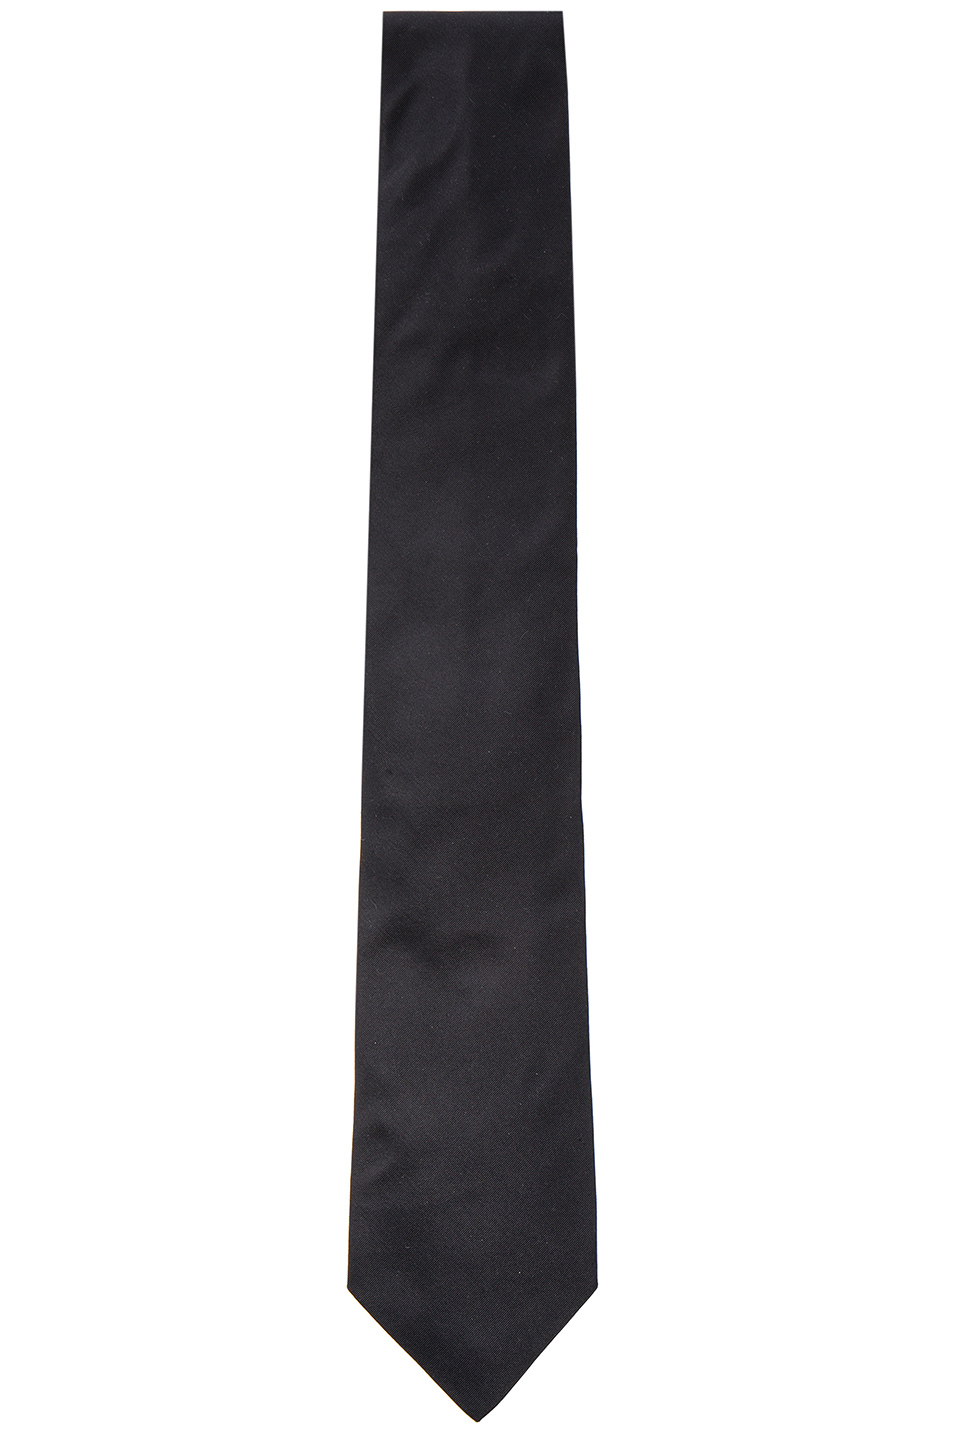 Lanvin Grosgrain Tie in Black